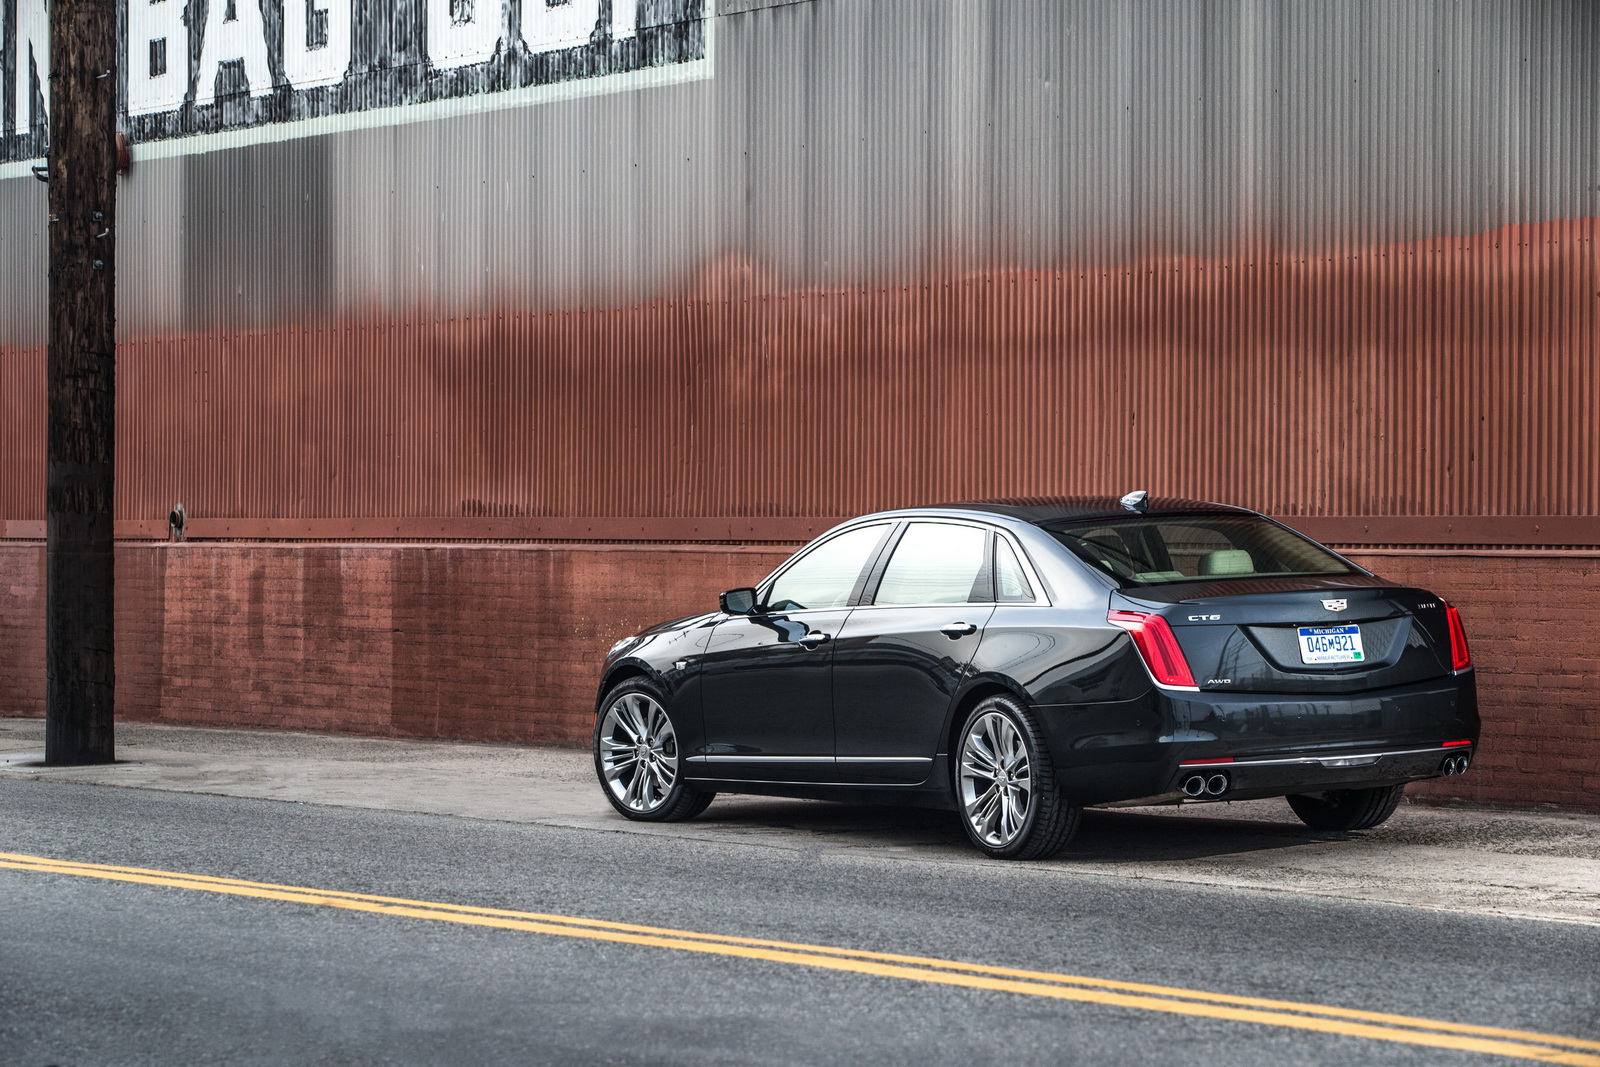 2018 cadillac ct6 gets selection of new goodies carscoops. Black Bedroom Furniture Sets. Home Design Ideas